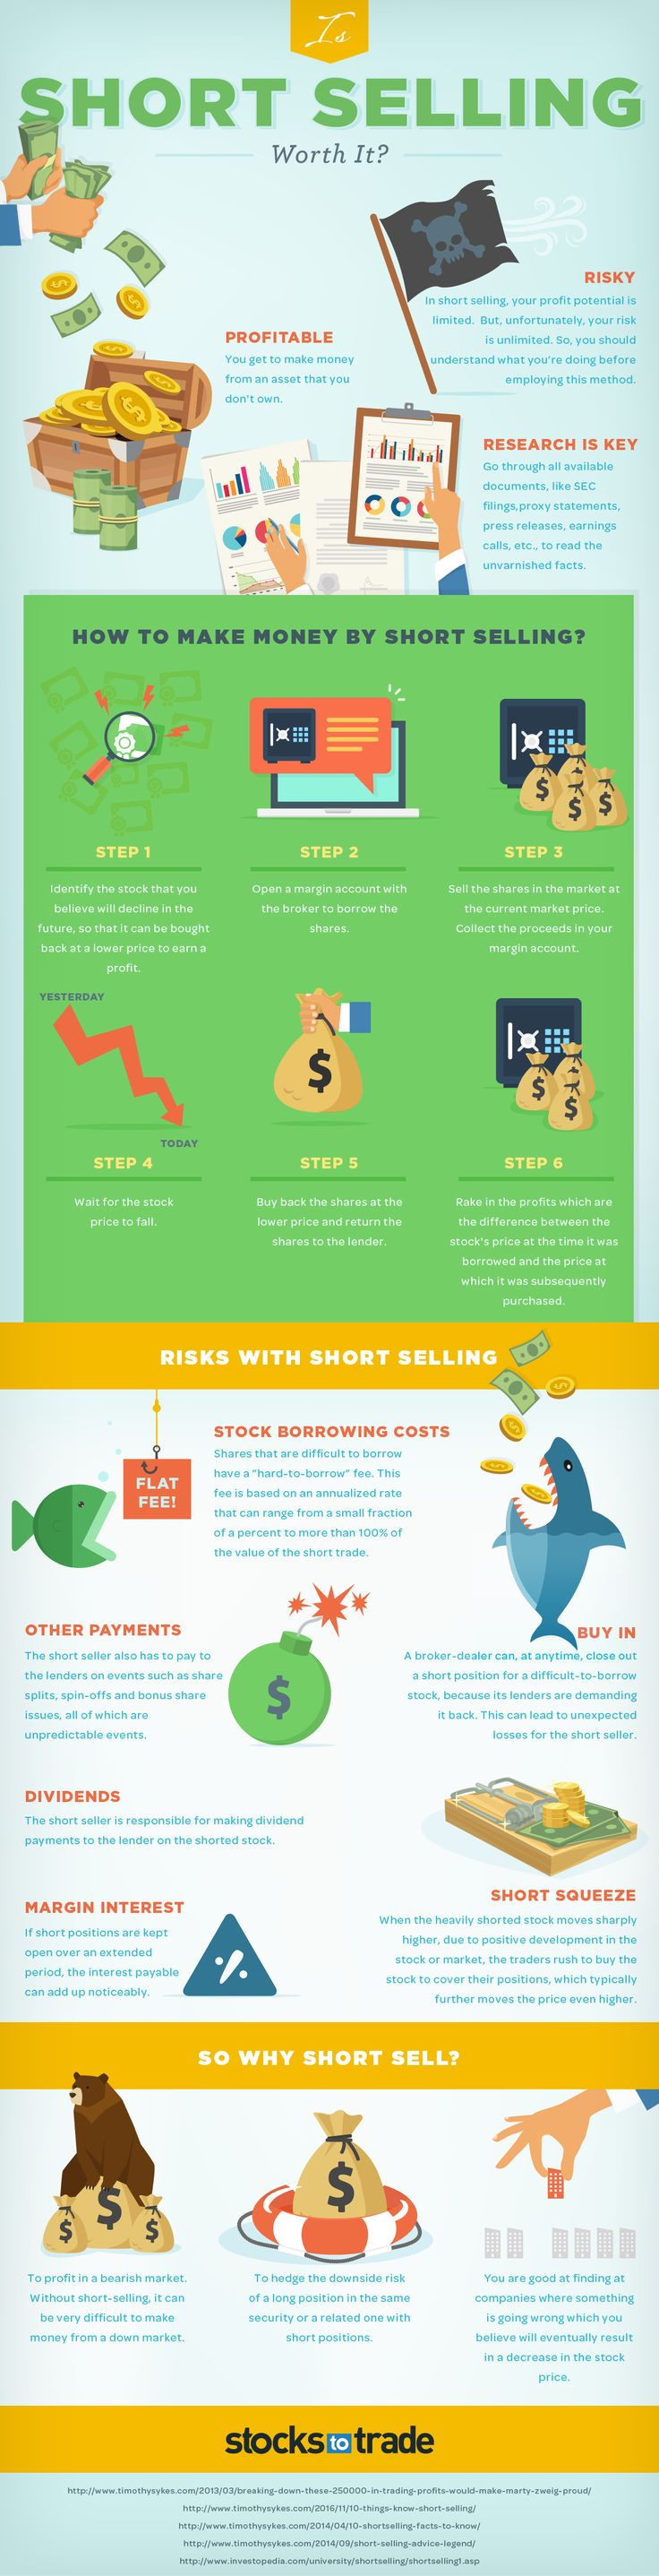 Is Shortselling Worth It? #infographic